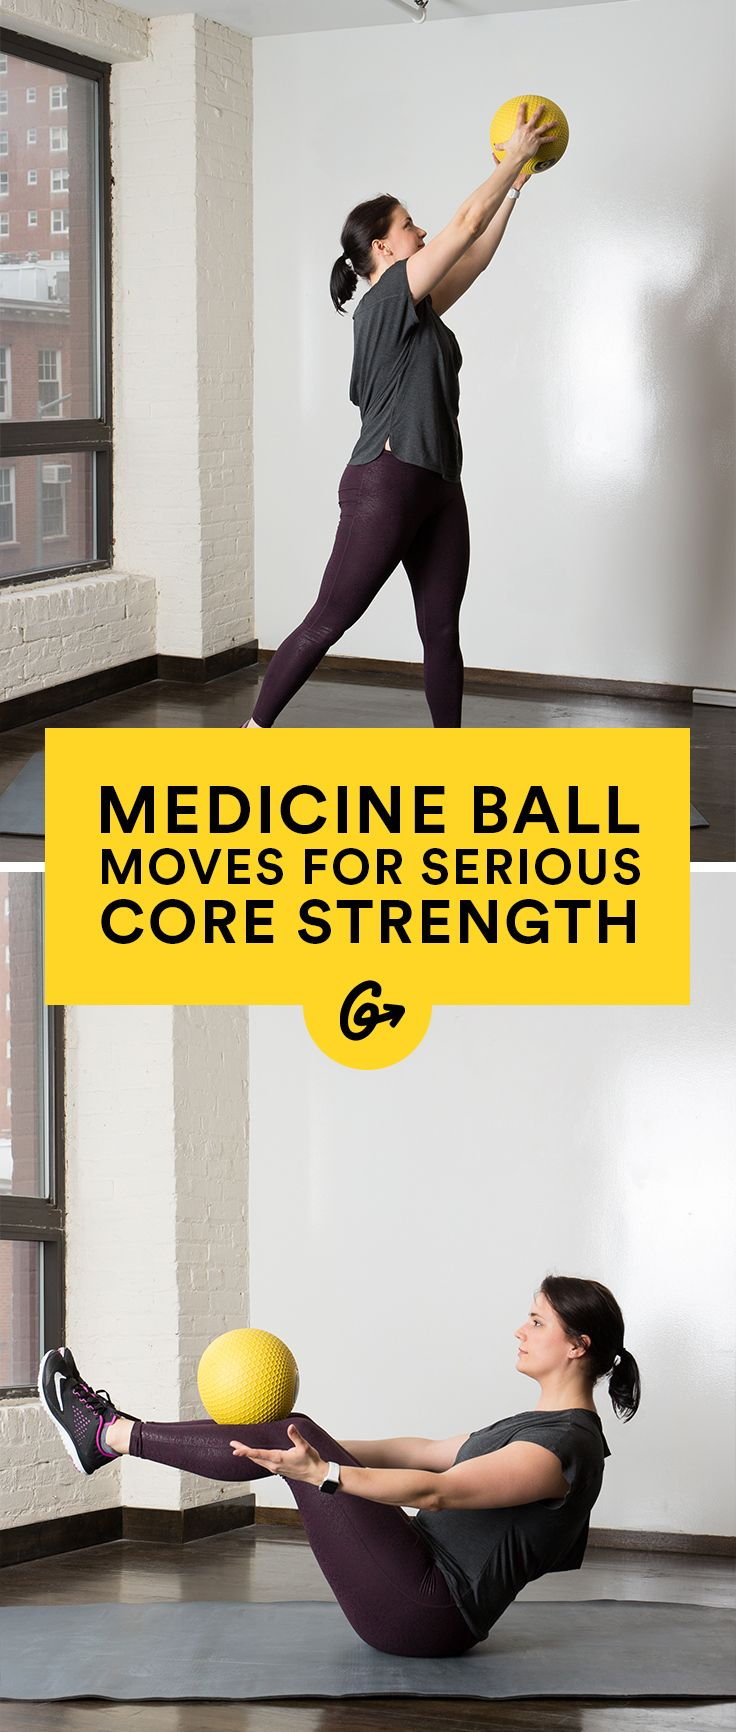 10 Medicine Ball Moves to Build Serious Core Strength #medicineball #abs #workout http://greatist.com/move/core-exercises-medicine-ball